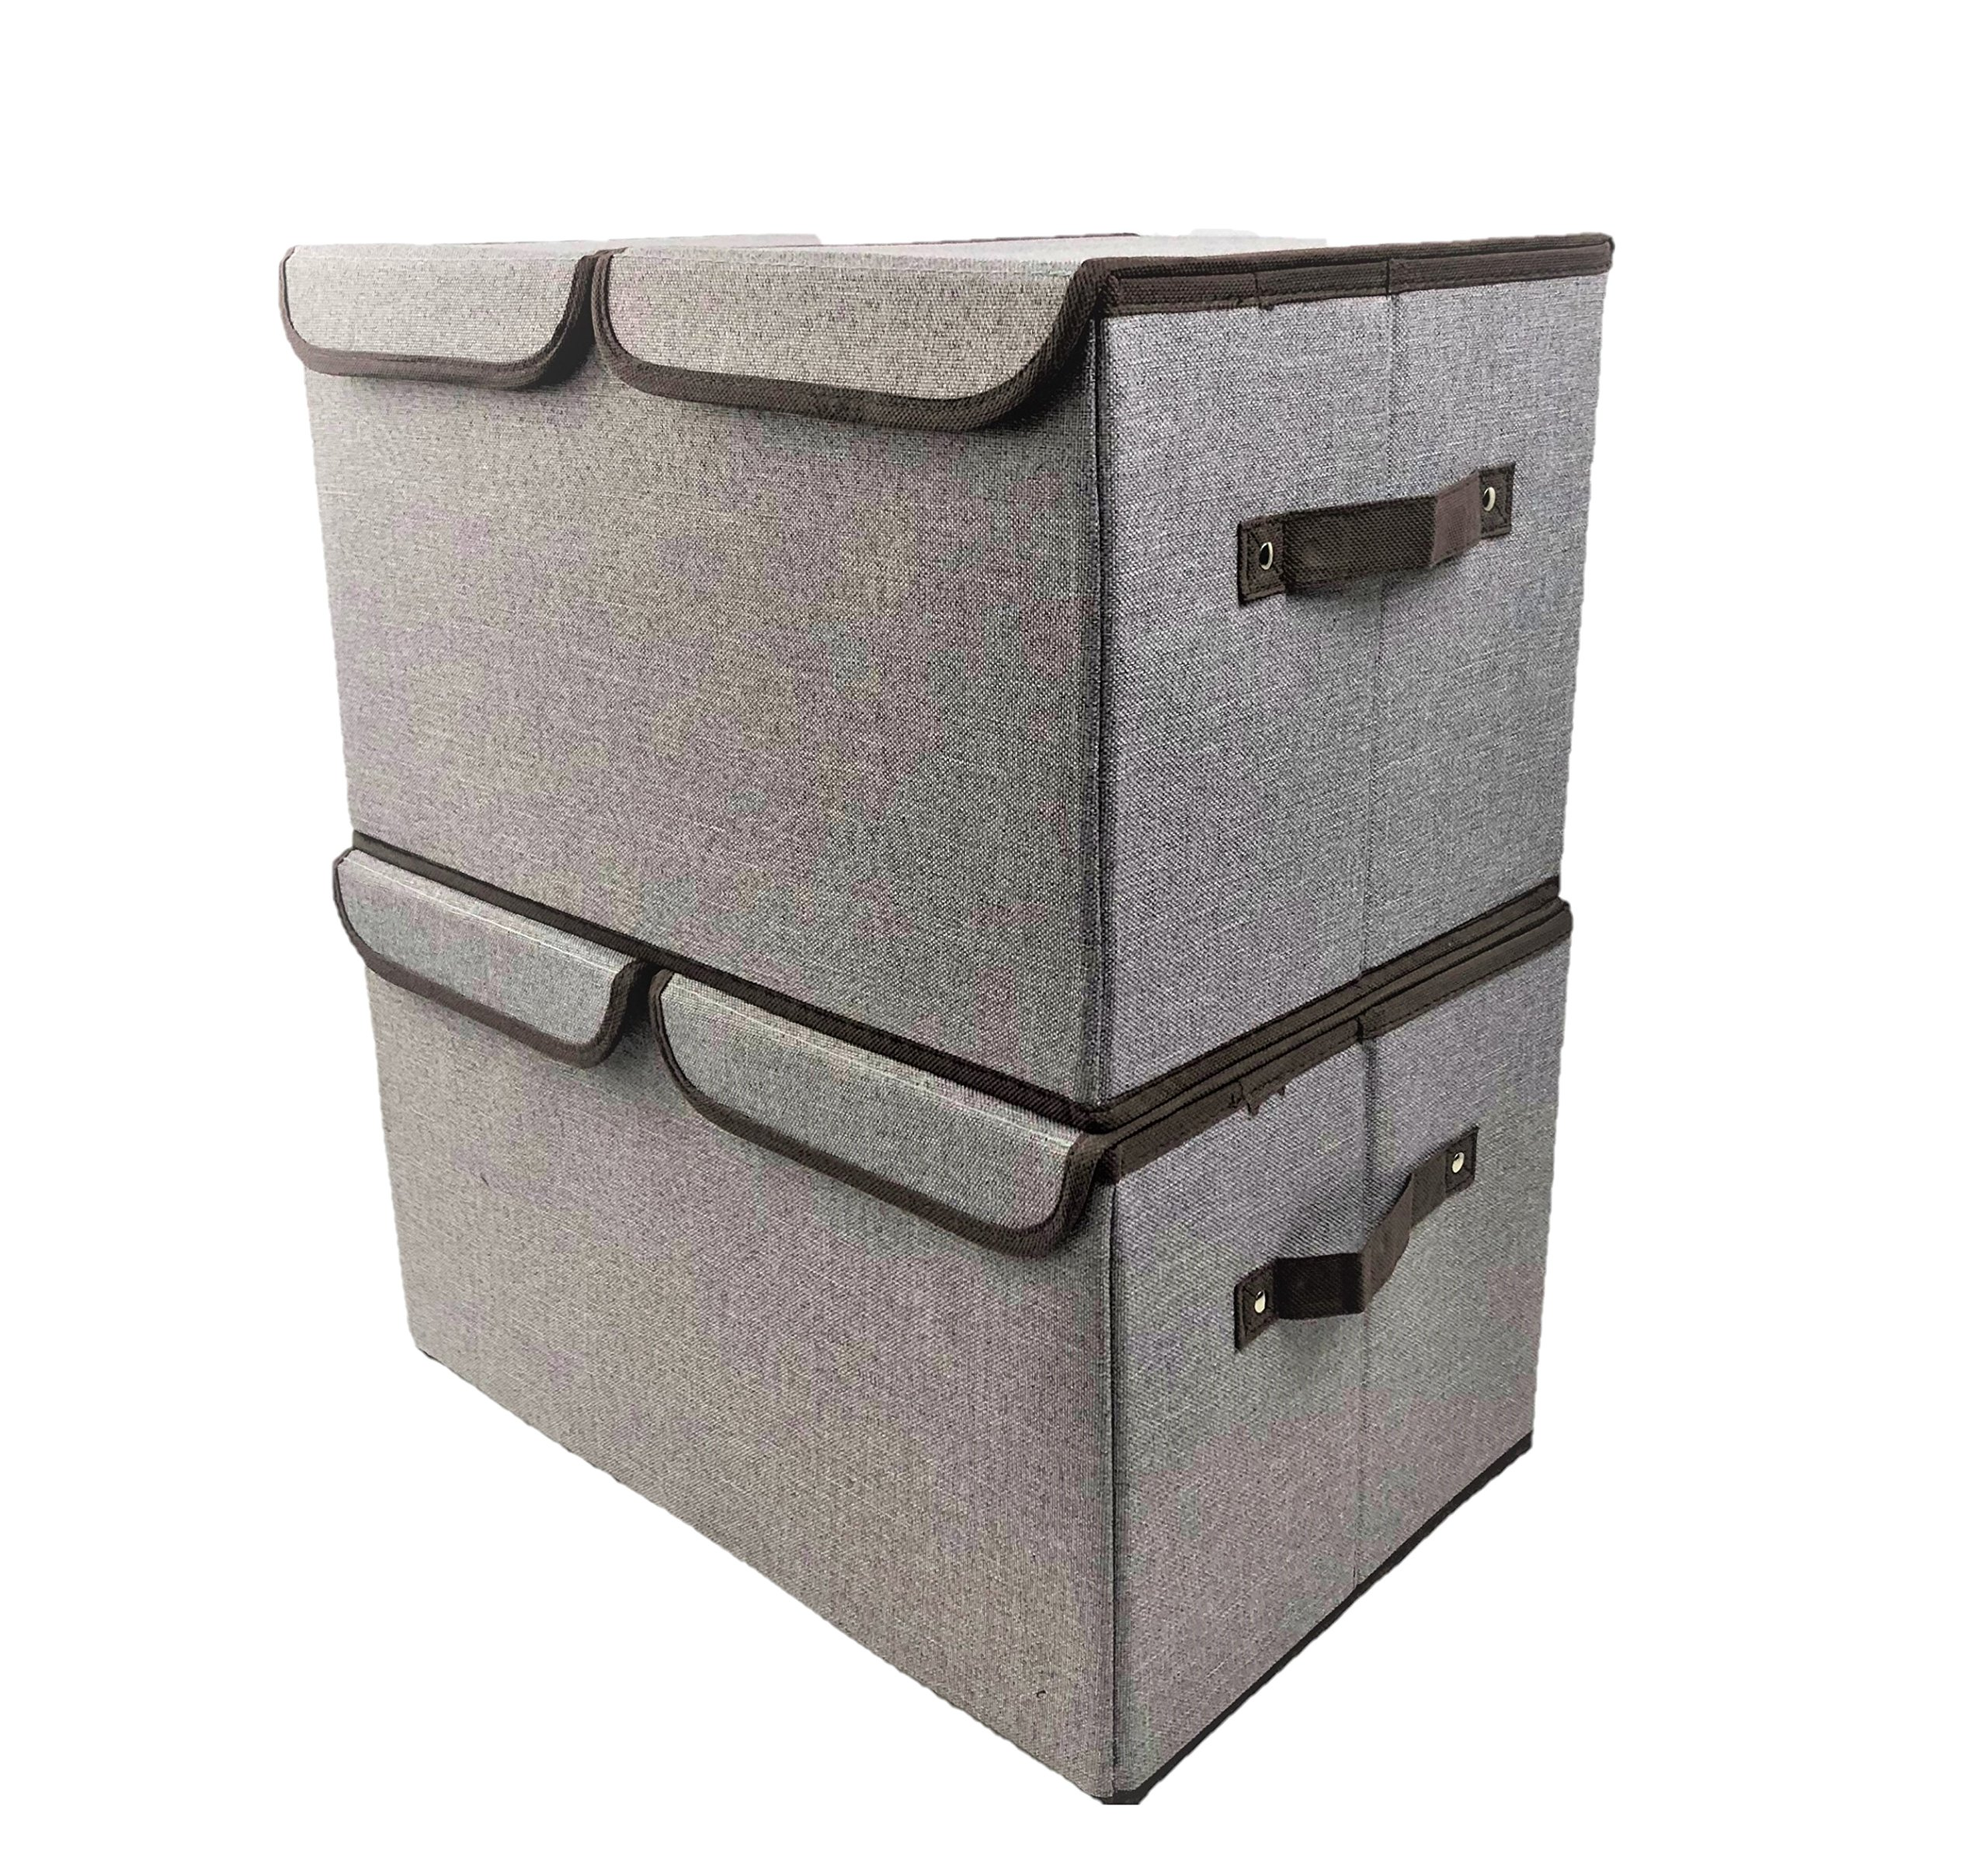 [2-Pack, Large Double Grid] Premium Quality Storage Cubes with Lid Collapsible Basket Shelve Bins Organizer for Toys Gifts Cloth Nursery Bedroom Folding Decorative Closet Home Office Box Declutter by Prorighty